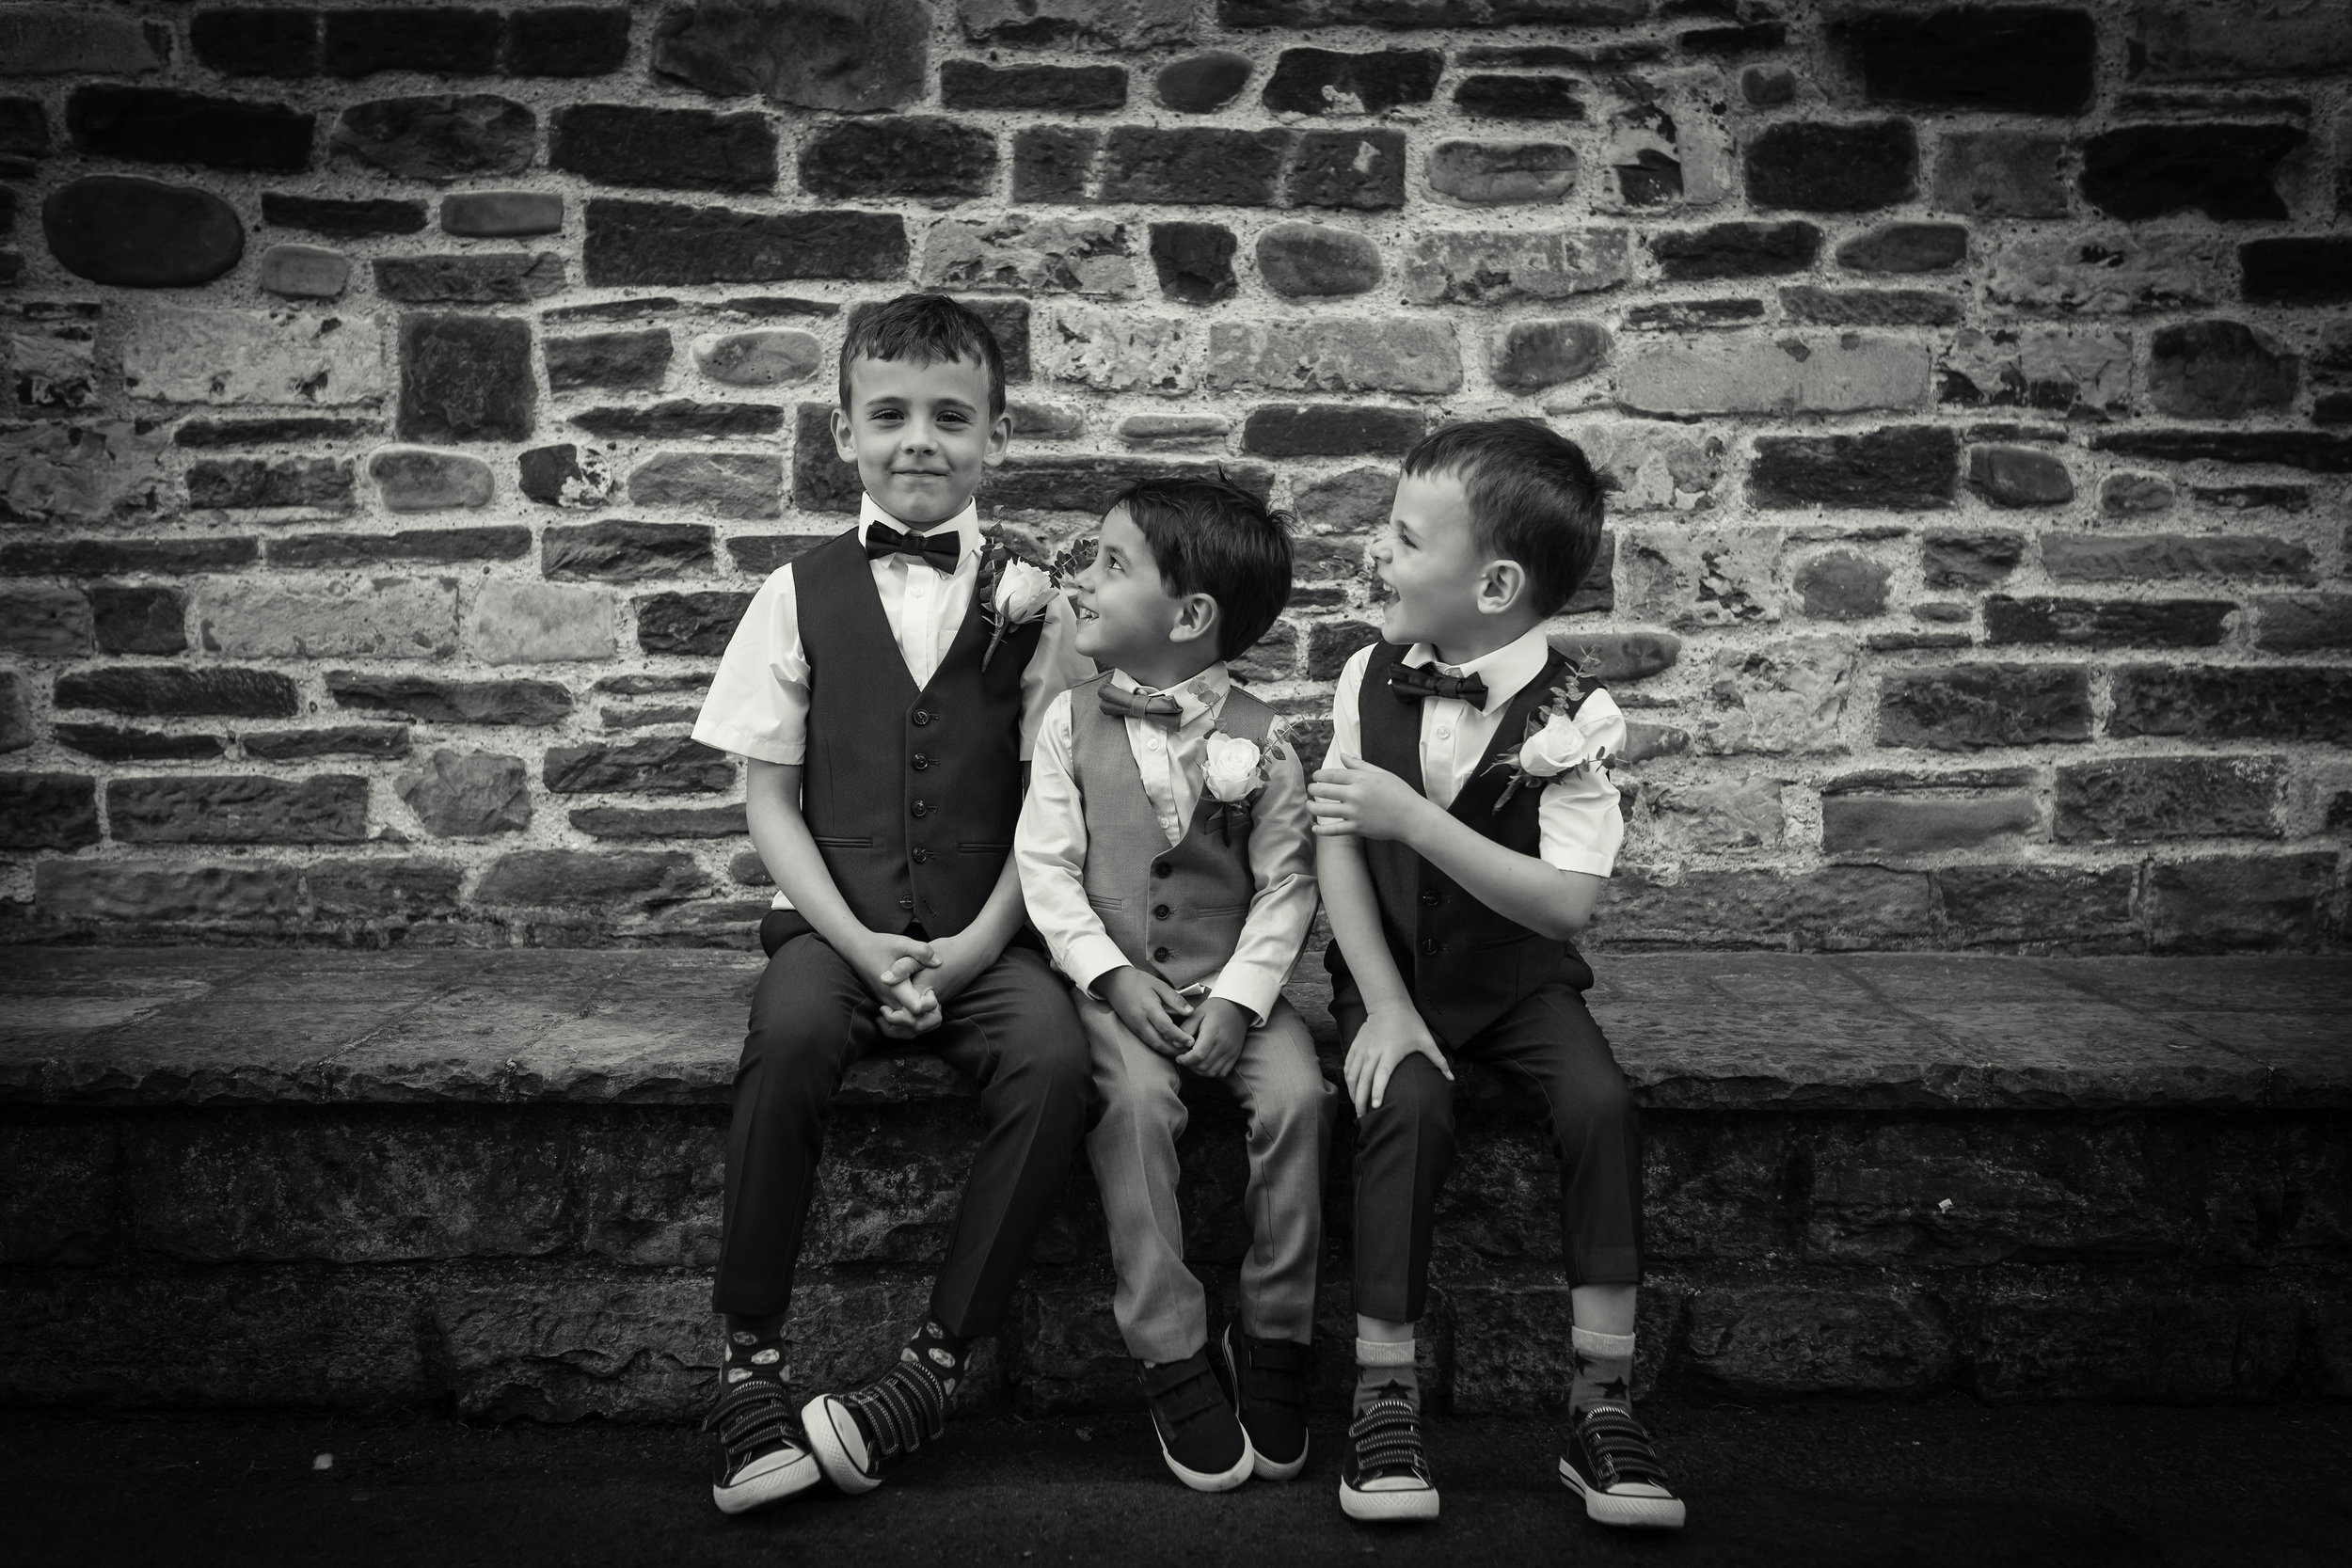 Page boy and cousins